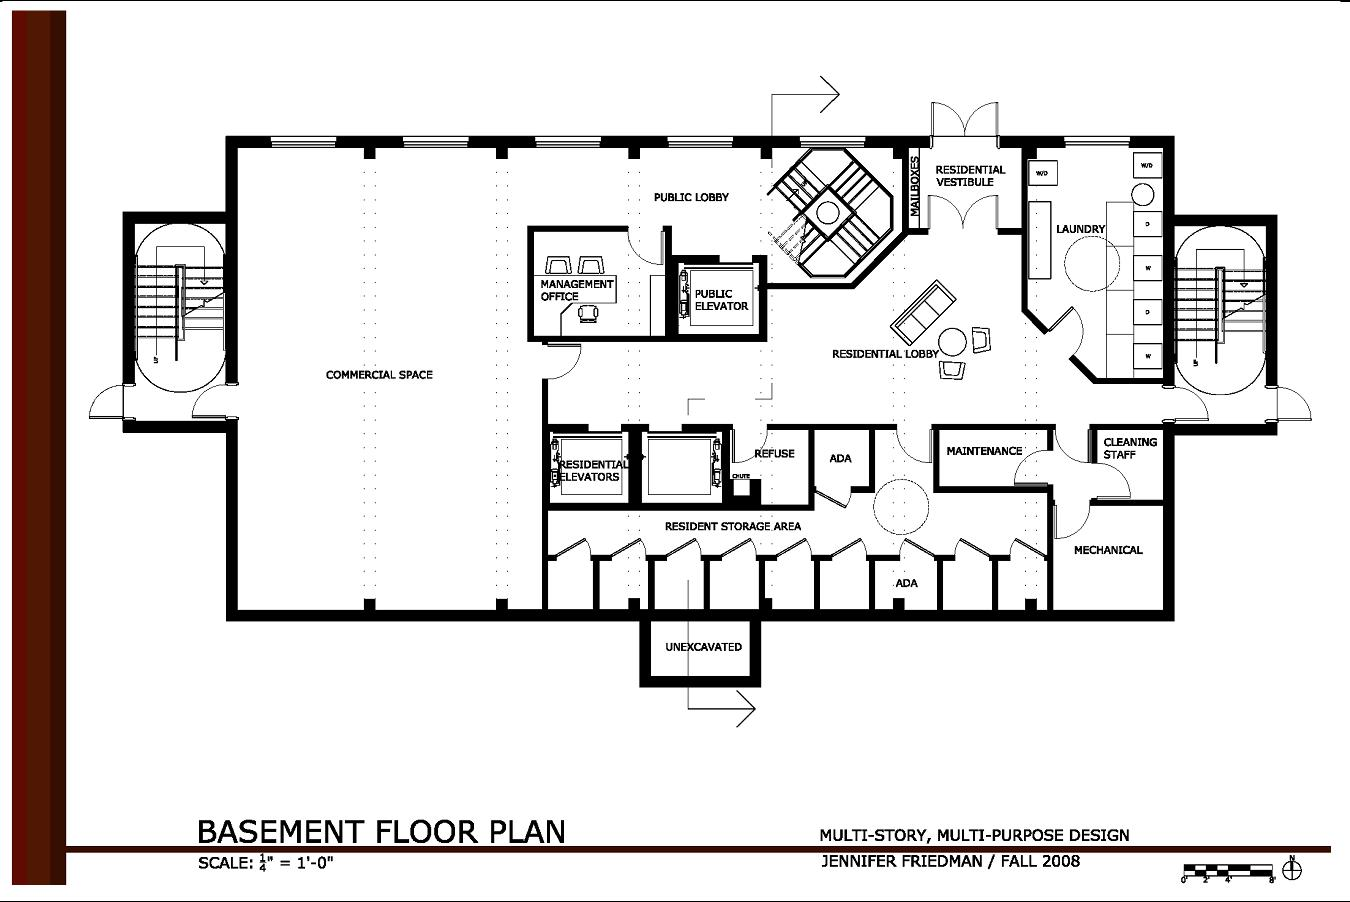 Multi story multi purpose design by jennifer friedman at for Commercial floor plan designer